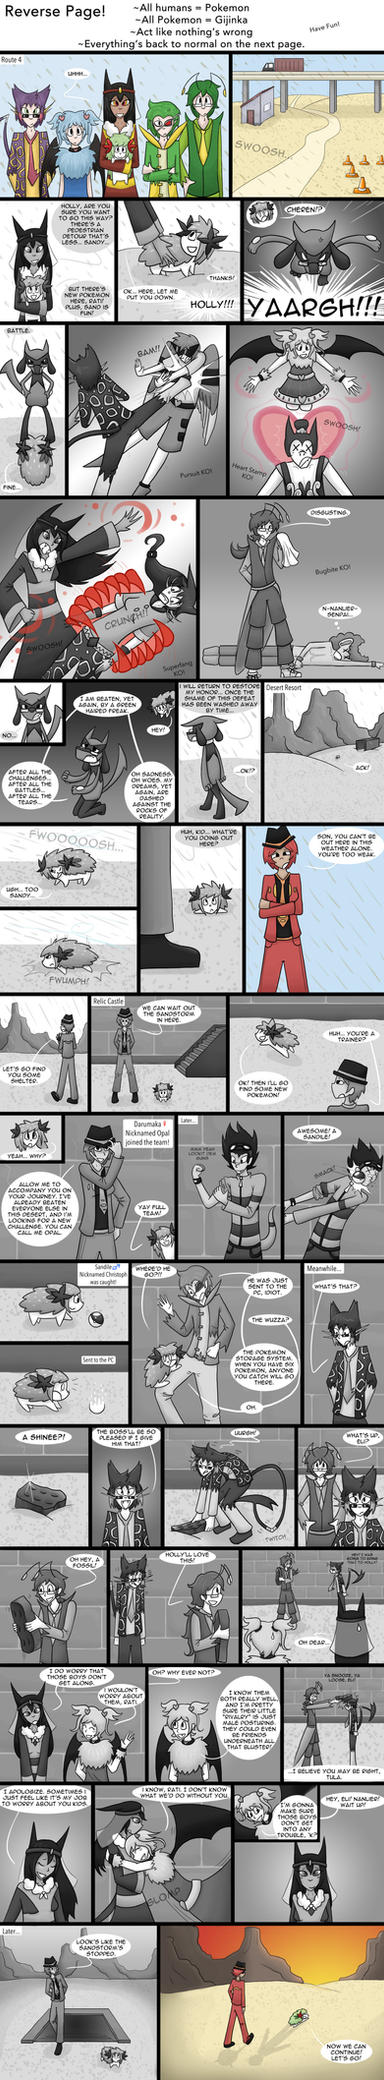 HBN page 13 REVERSE PAGE!!! by GreyCloudCat